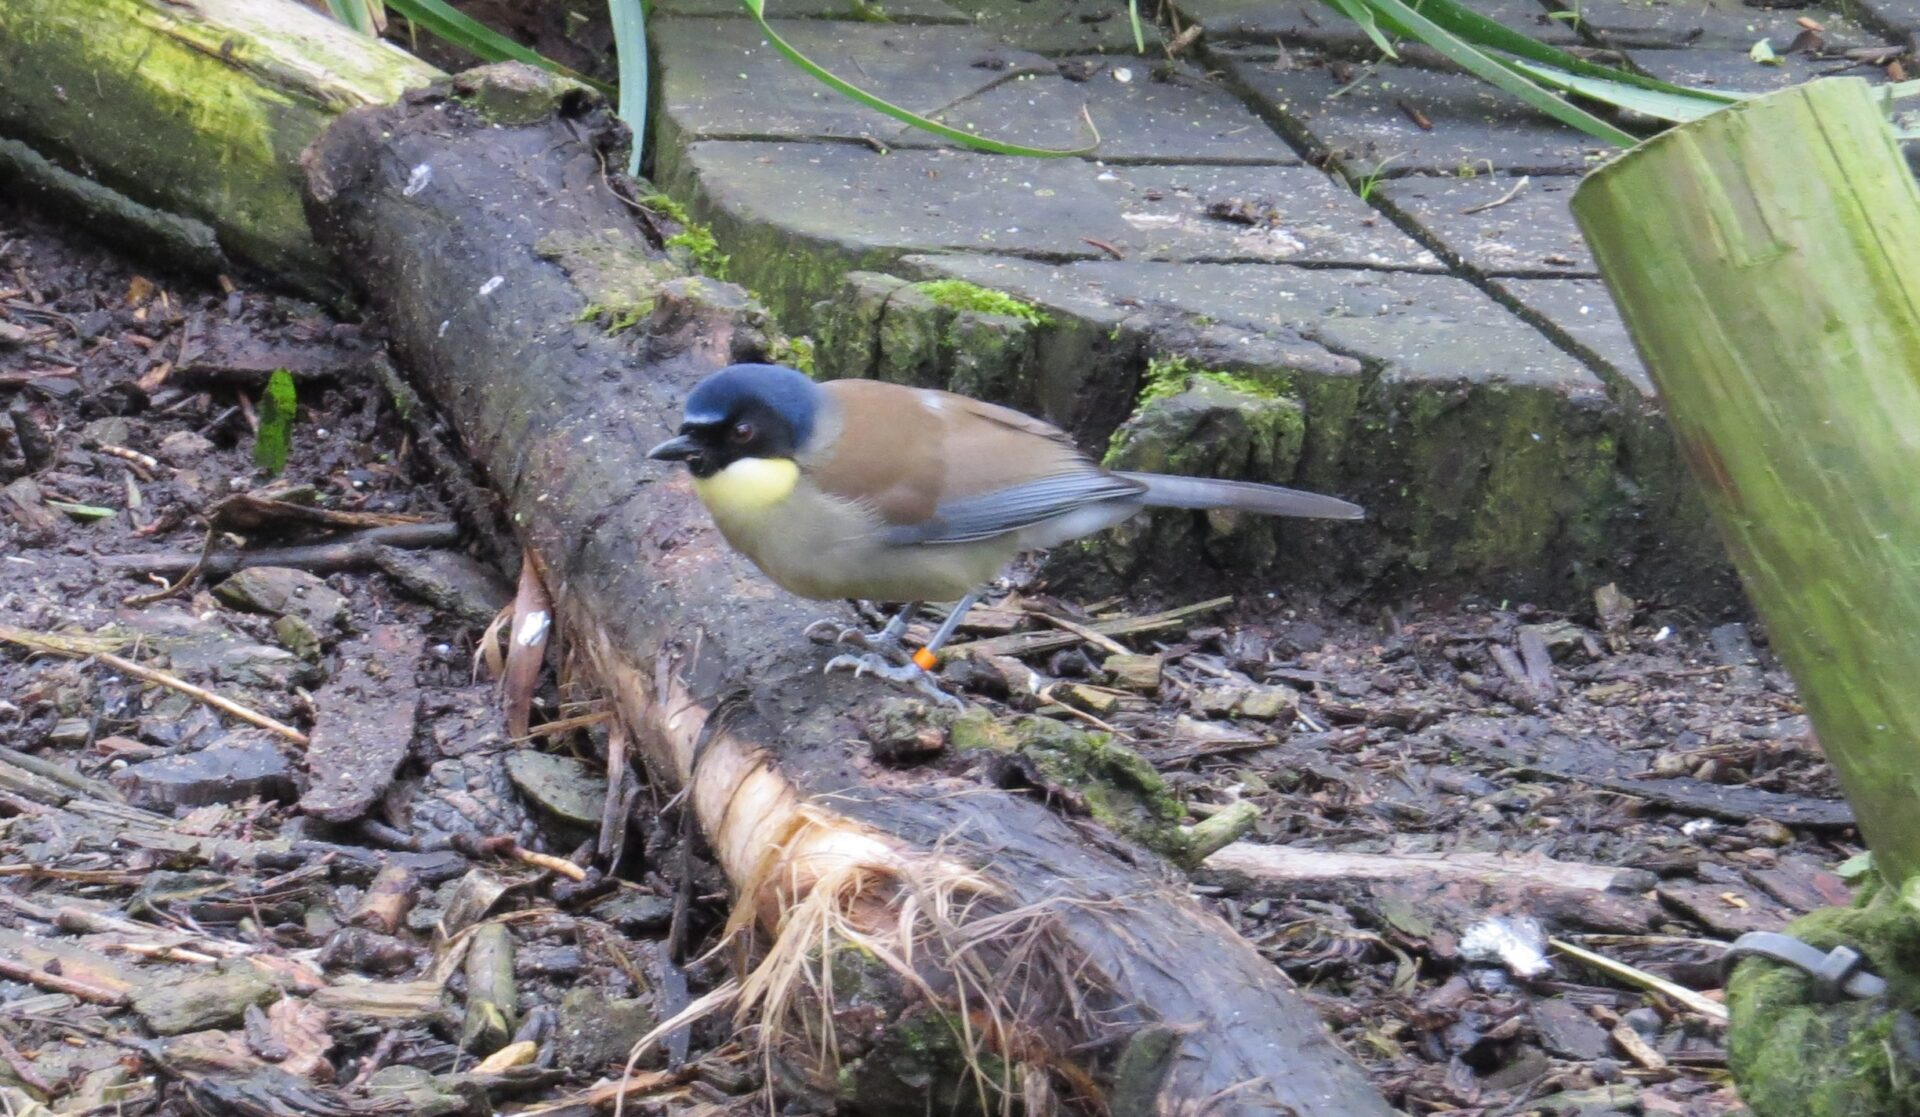 Blue_crowned_laughing_thrush